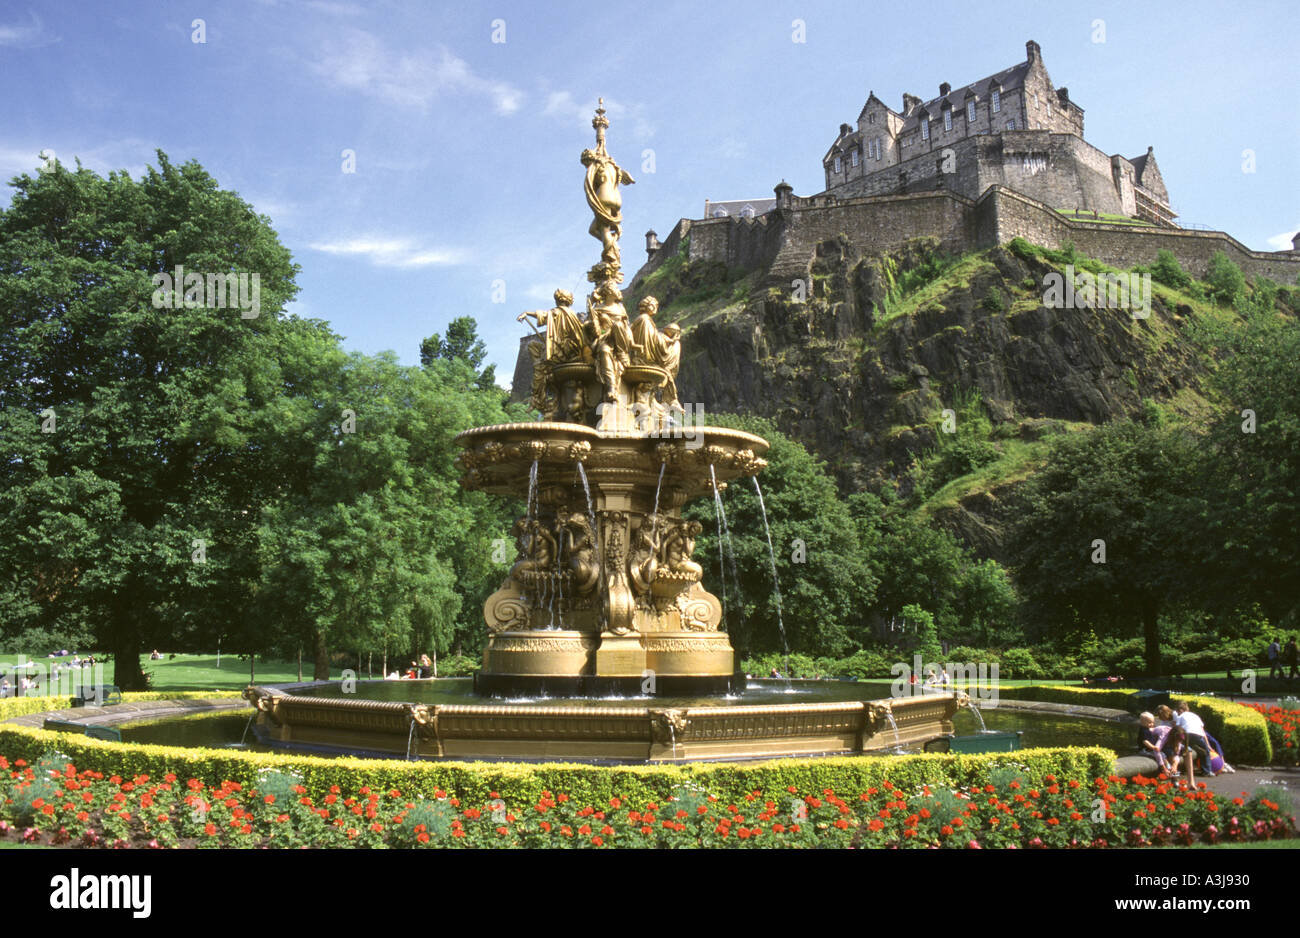 The Ross Fountain and Edinburgh Castle from Princes Street Gardens, Edinburgh, Scotland, UK.